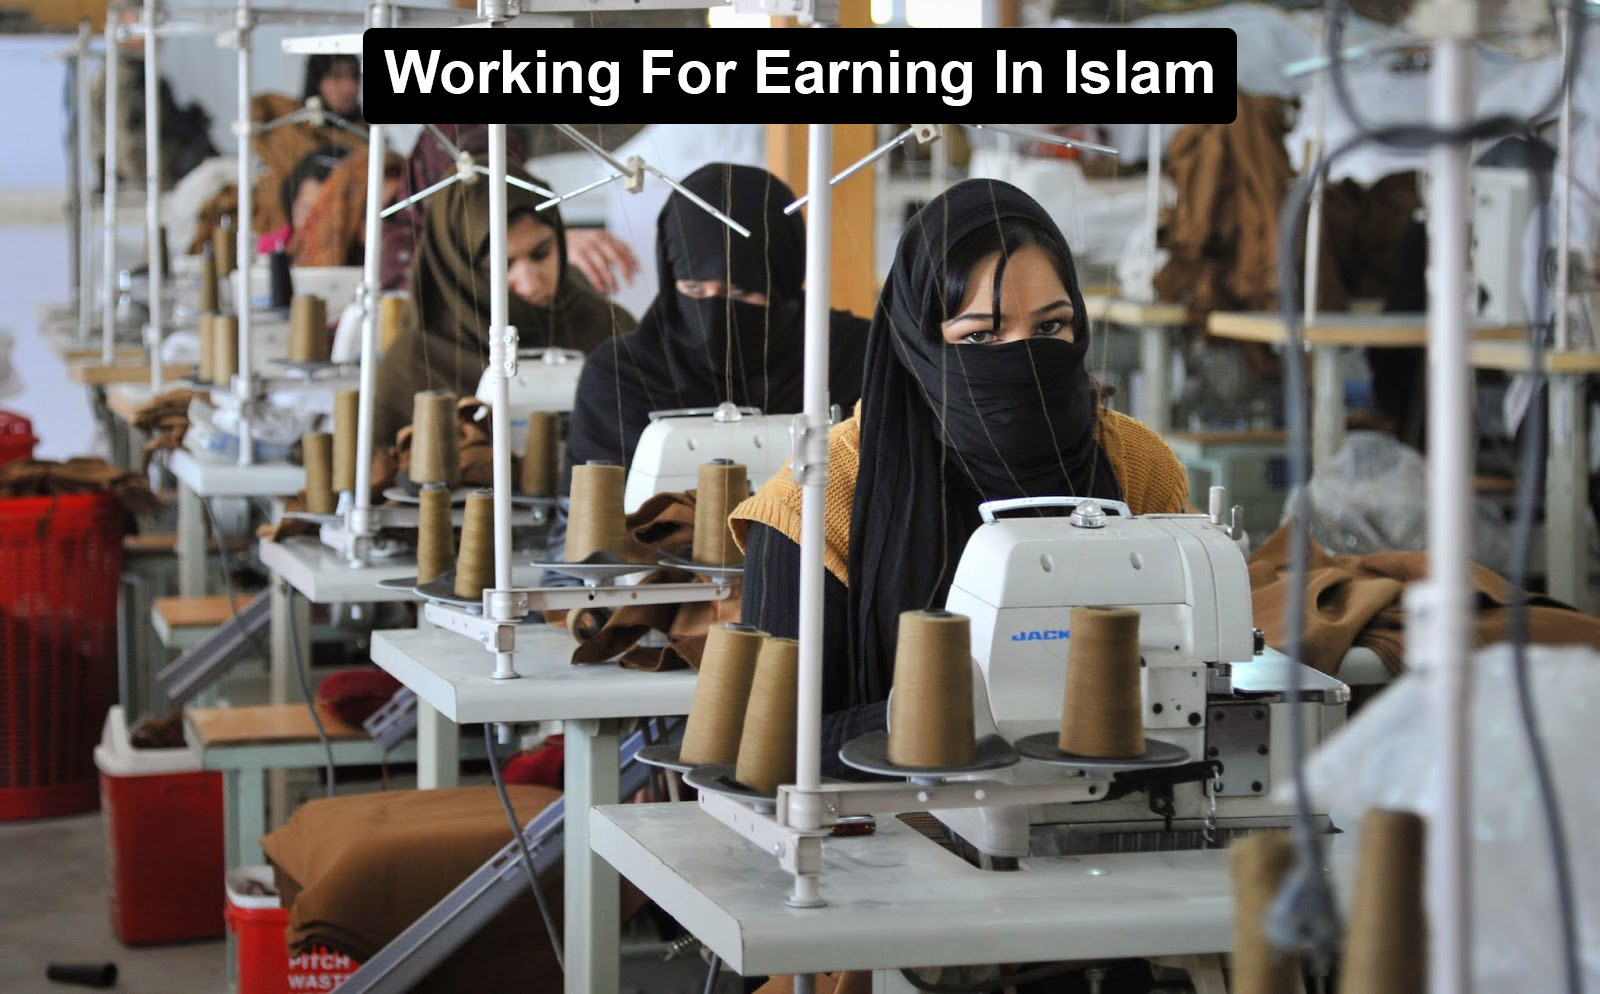 Working For Earning In Islam